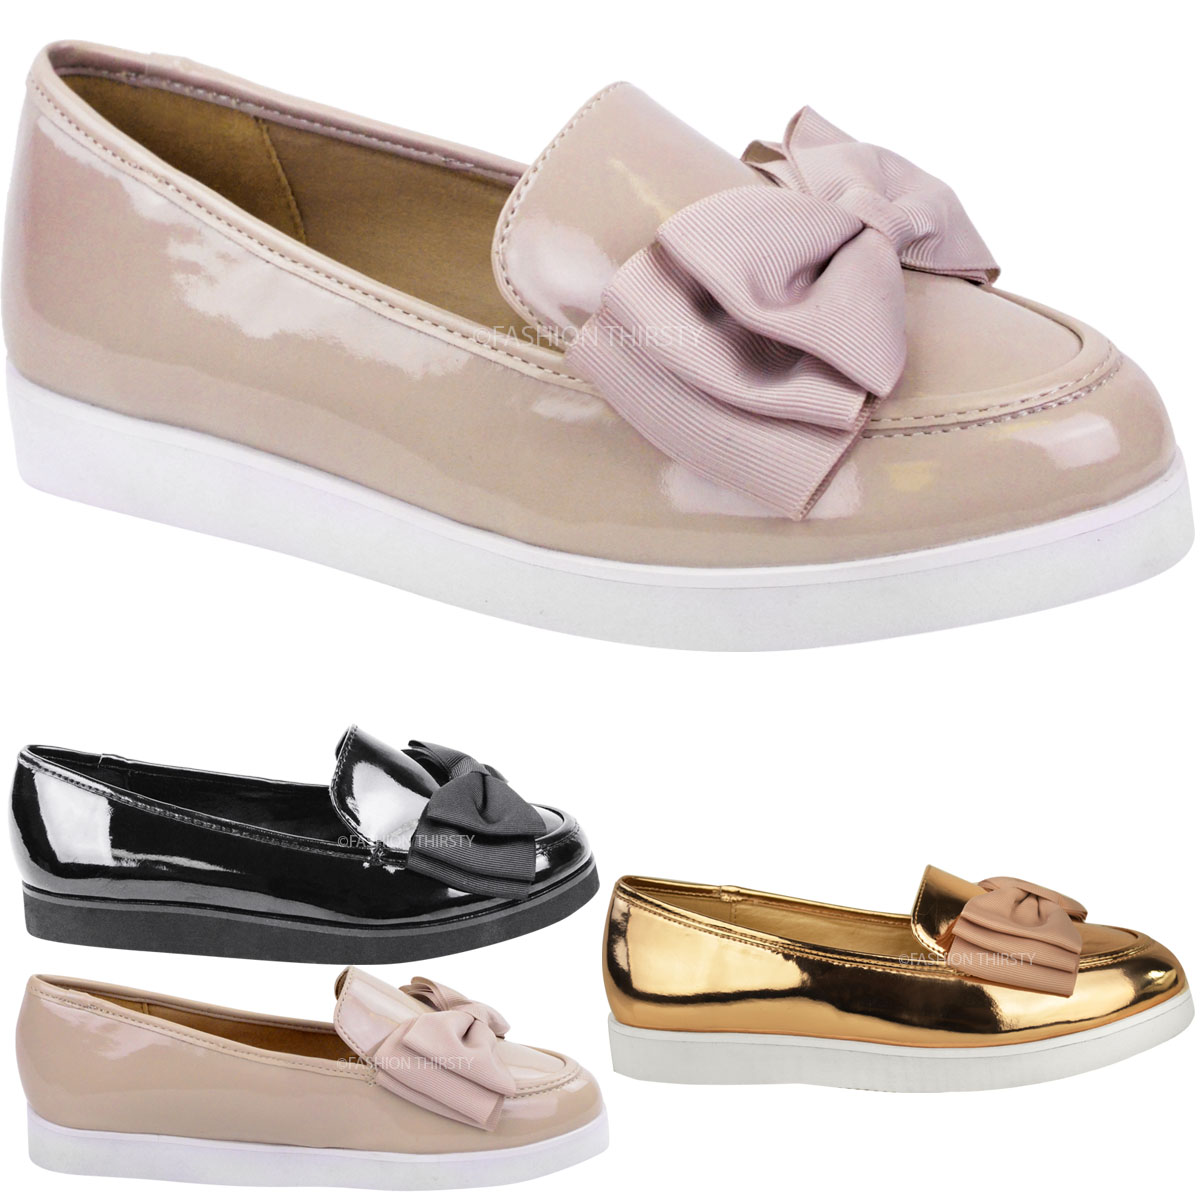 Women's flats are more than fine. For comfort and good looks, flats are perfection. At Payless, you'll discover a great selection of flats for women, so it won't be hard to find the ideal pair for you.